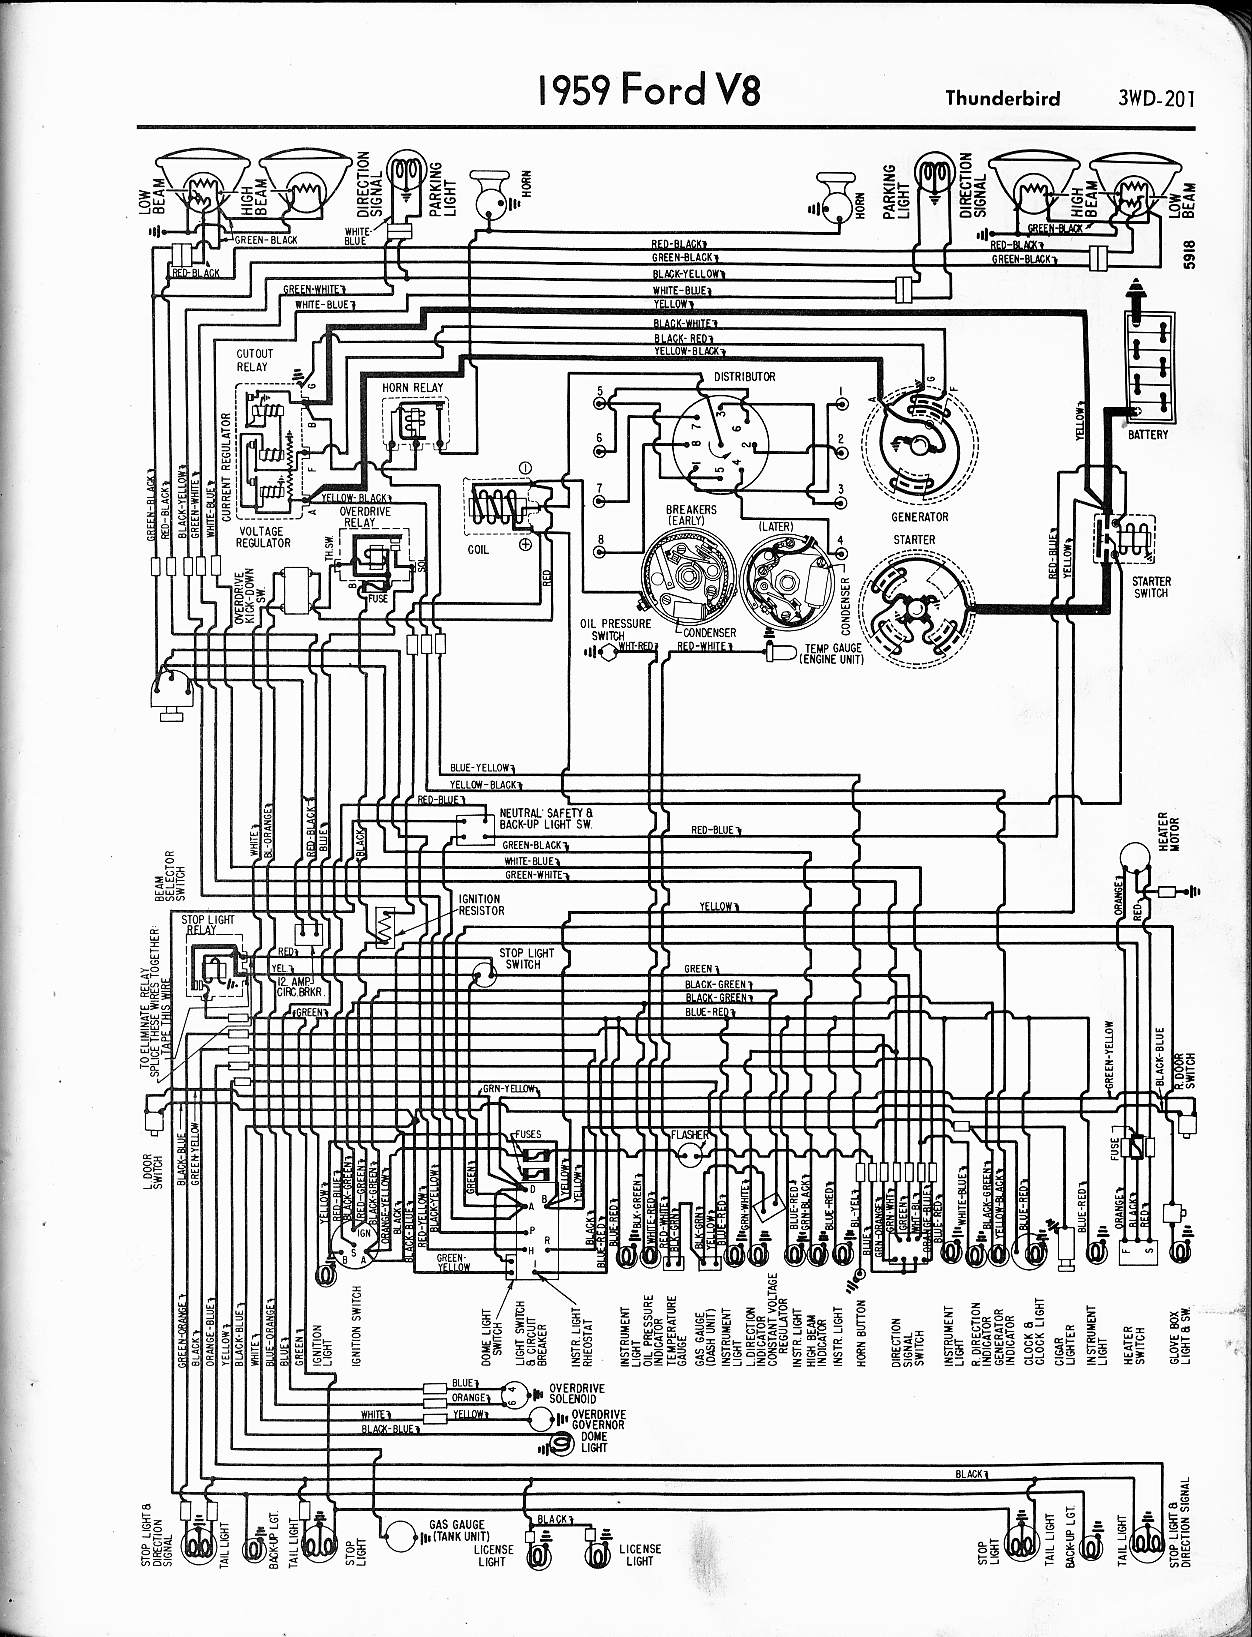 MWire5765 201 57 65 ford wiring diagrams 1956 Chevy Convertible at crackthecode.co